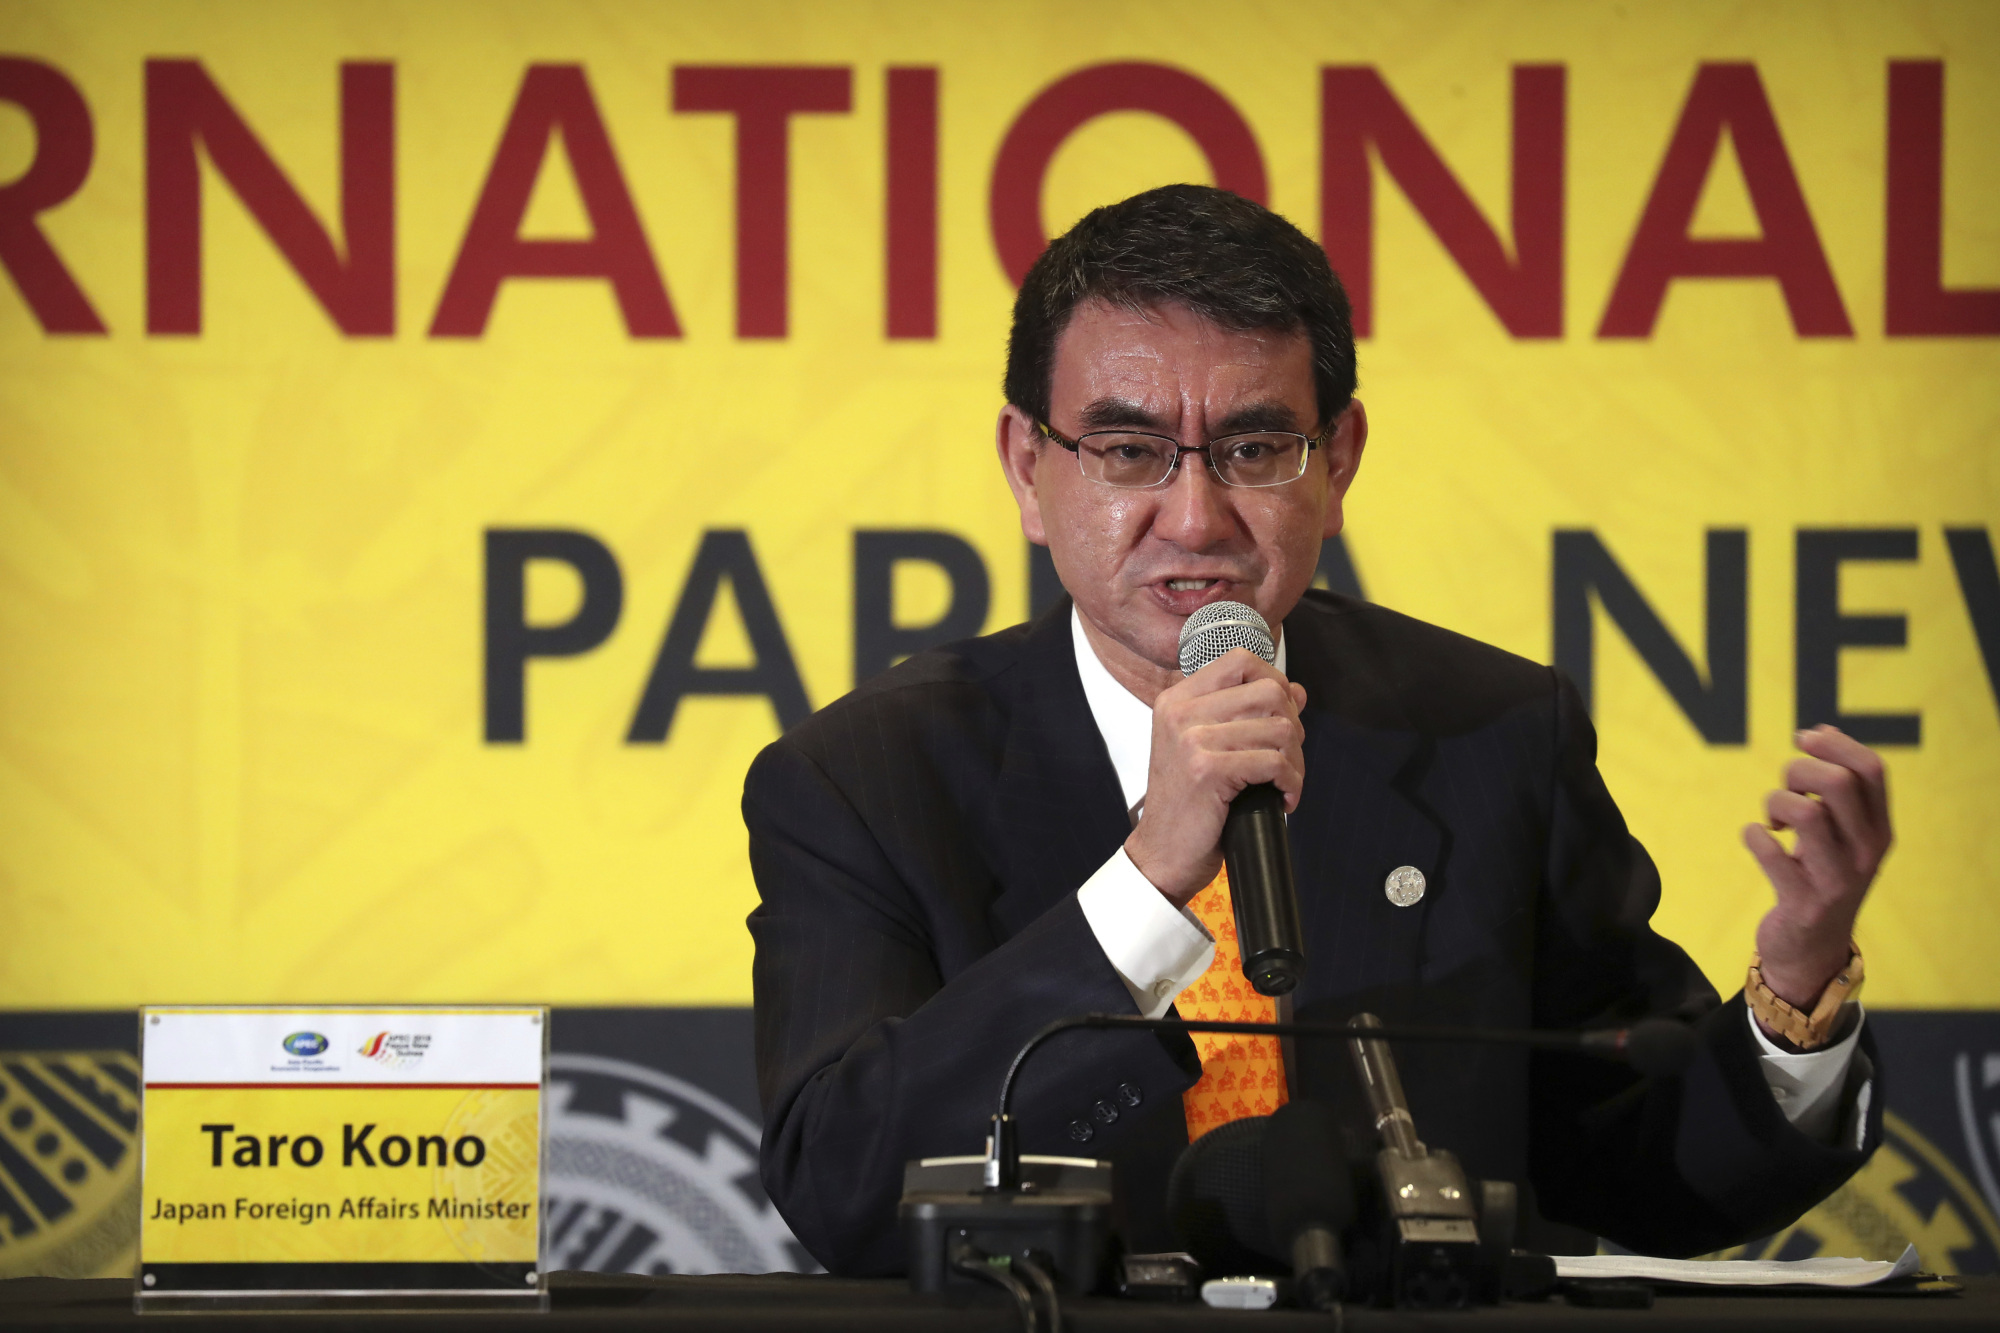 Japan's Foreign Minister Taro Kono speaks during a news conference held on the sidelines of the APEC Summit at the International Media Center in Port Moresby, Papua New Guinea, on Thursday. | AP